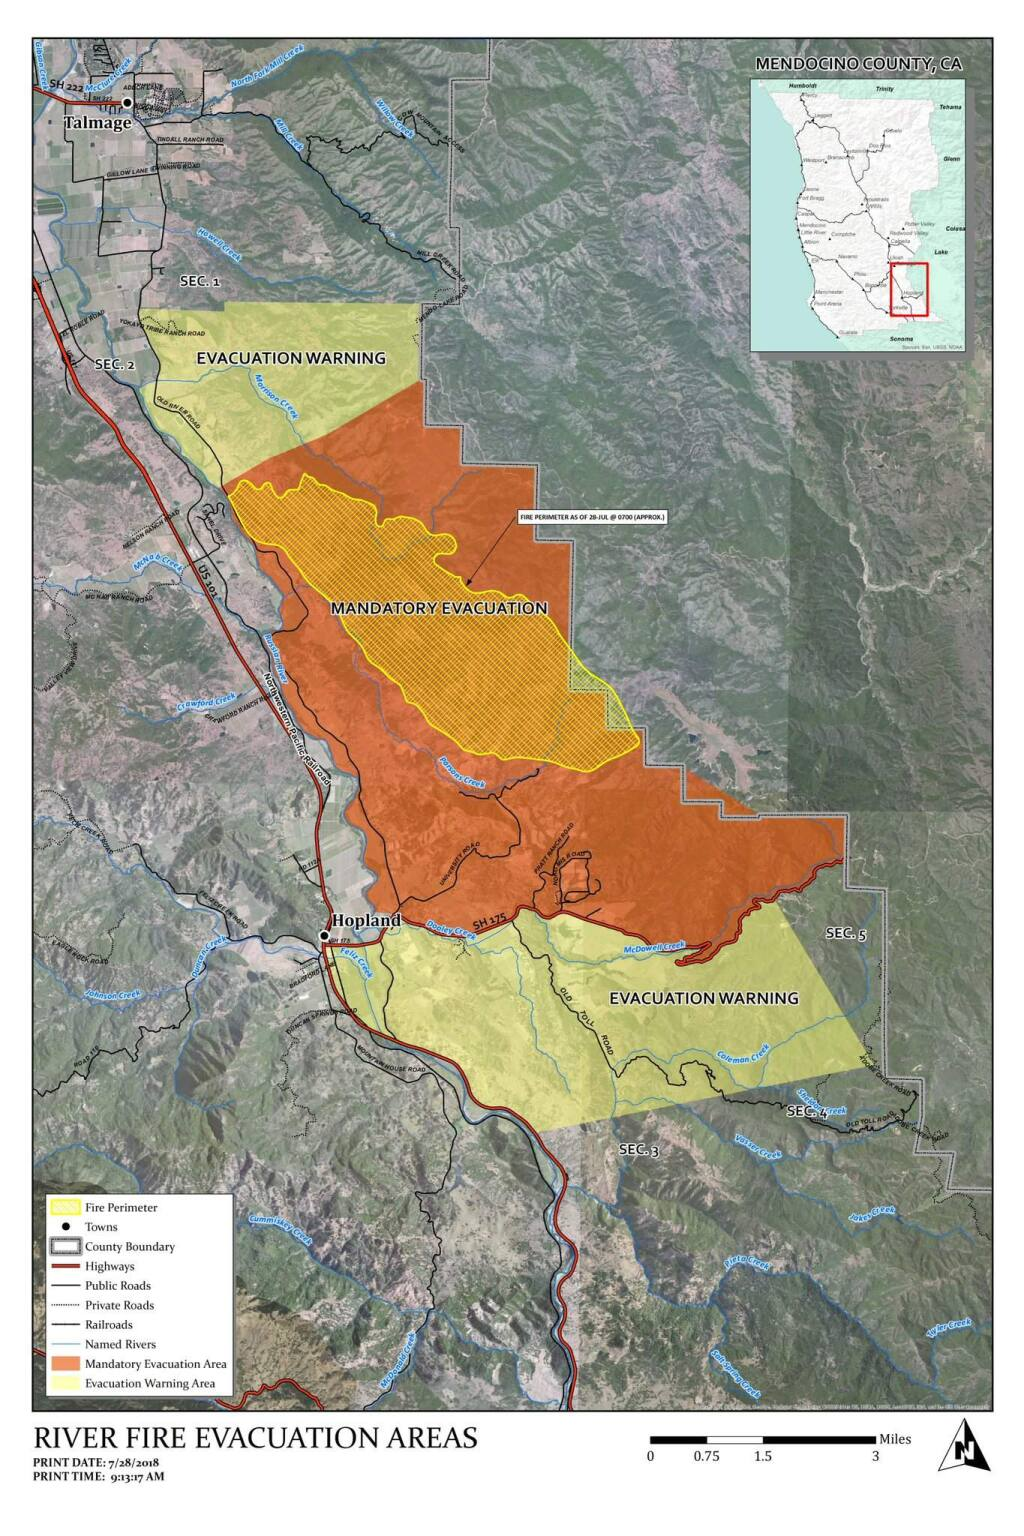 River fire evacutation map, Saturday, July 28, 2018. (Mendocino County Sheriff's Office)